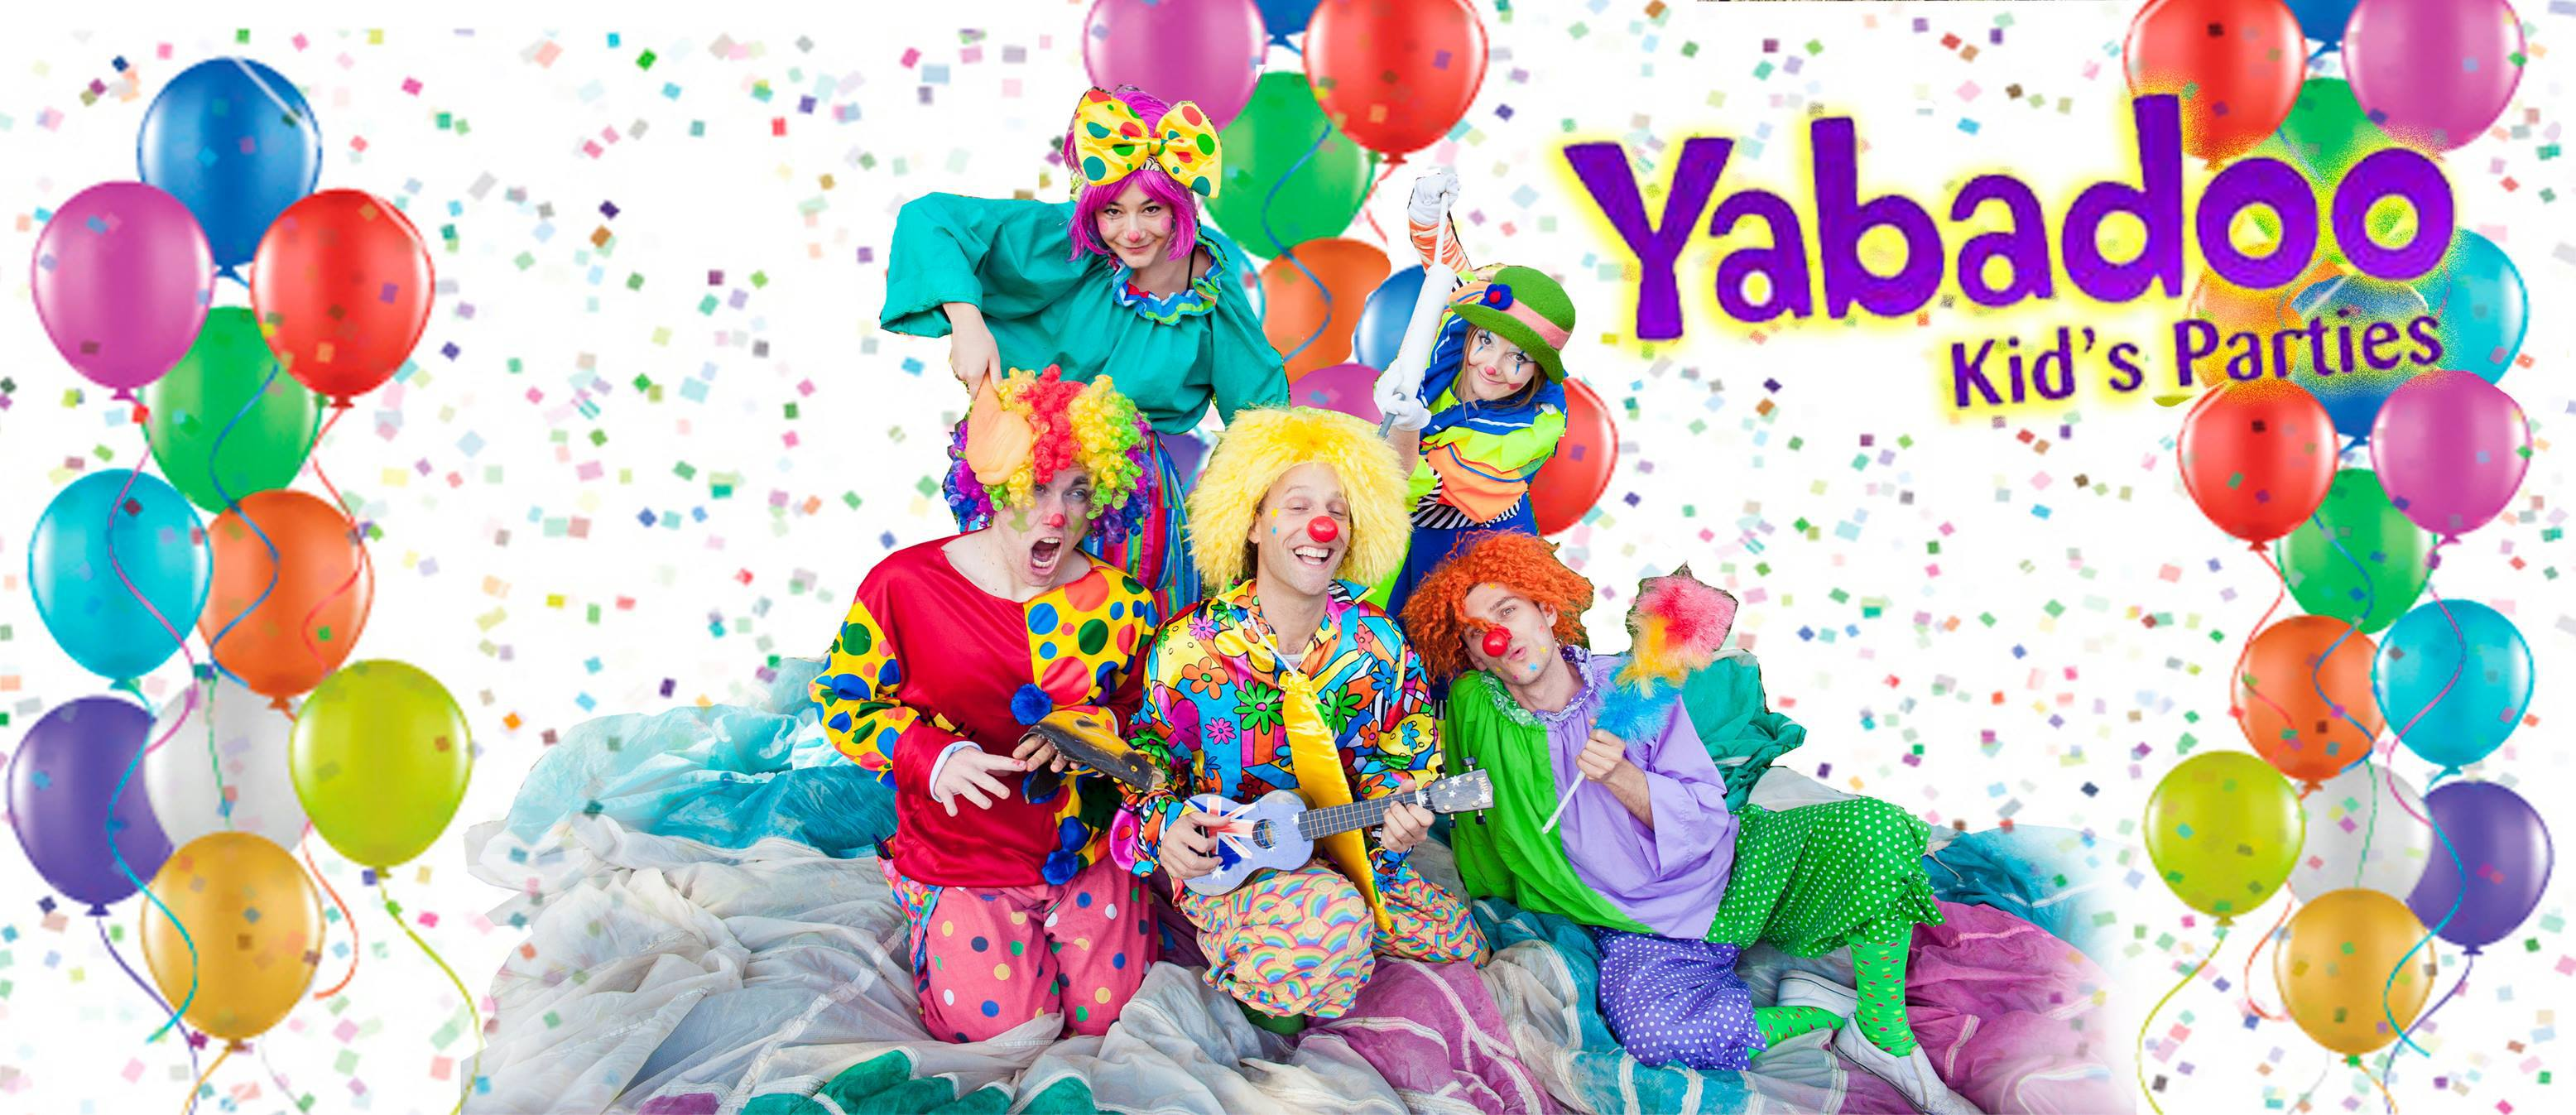 Childrens Birthday Party Ideas That Come To You Canberra - Childrens birthday party ideas canberra